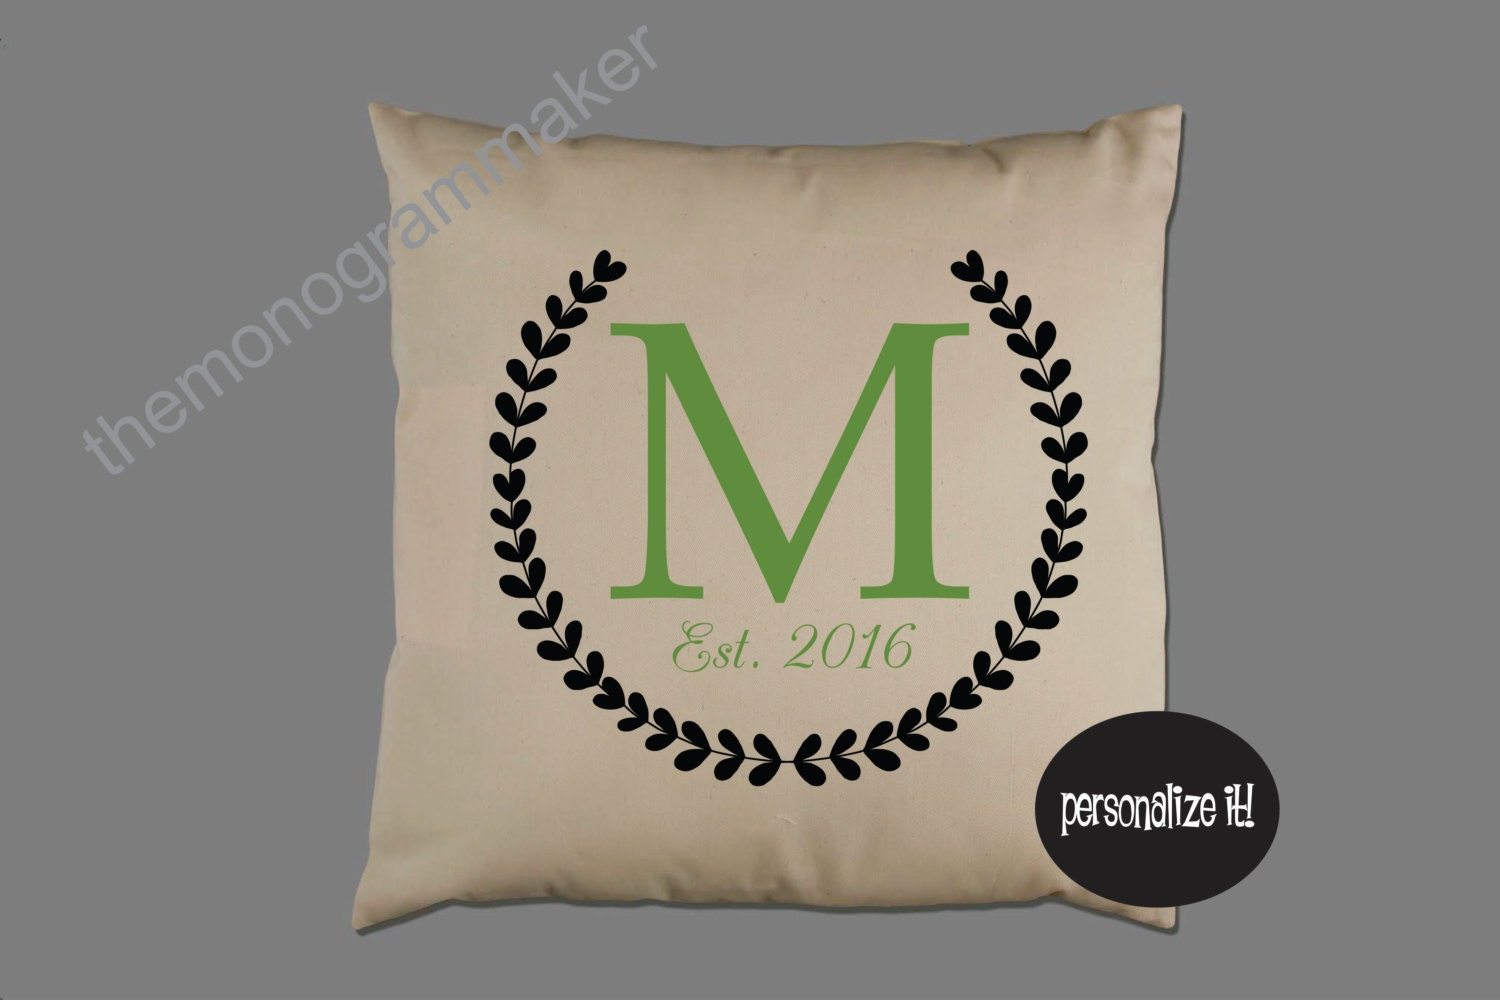 Personalized Wedding Gift Pillow Cover Pillow Case